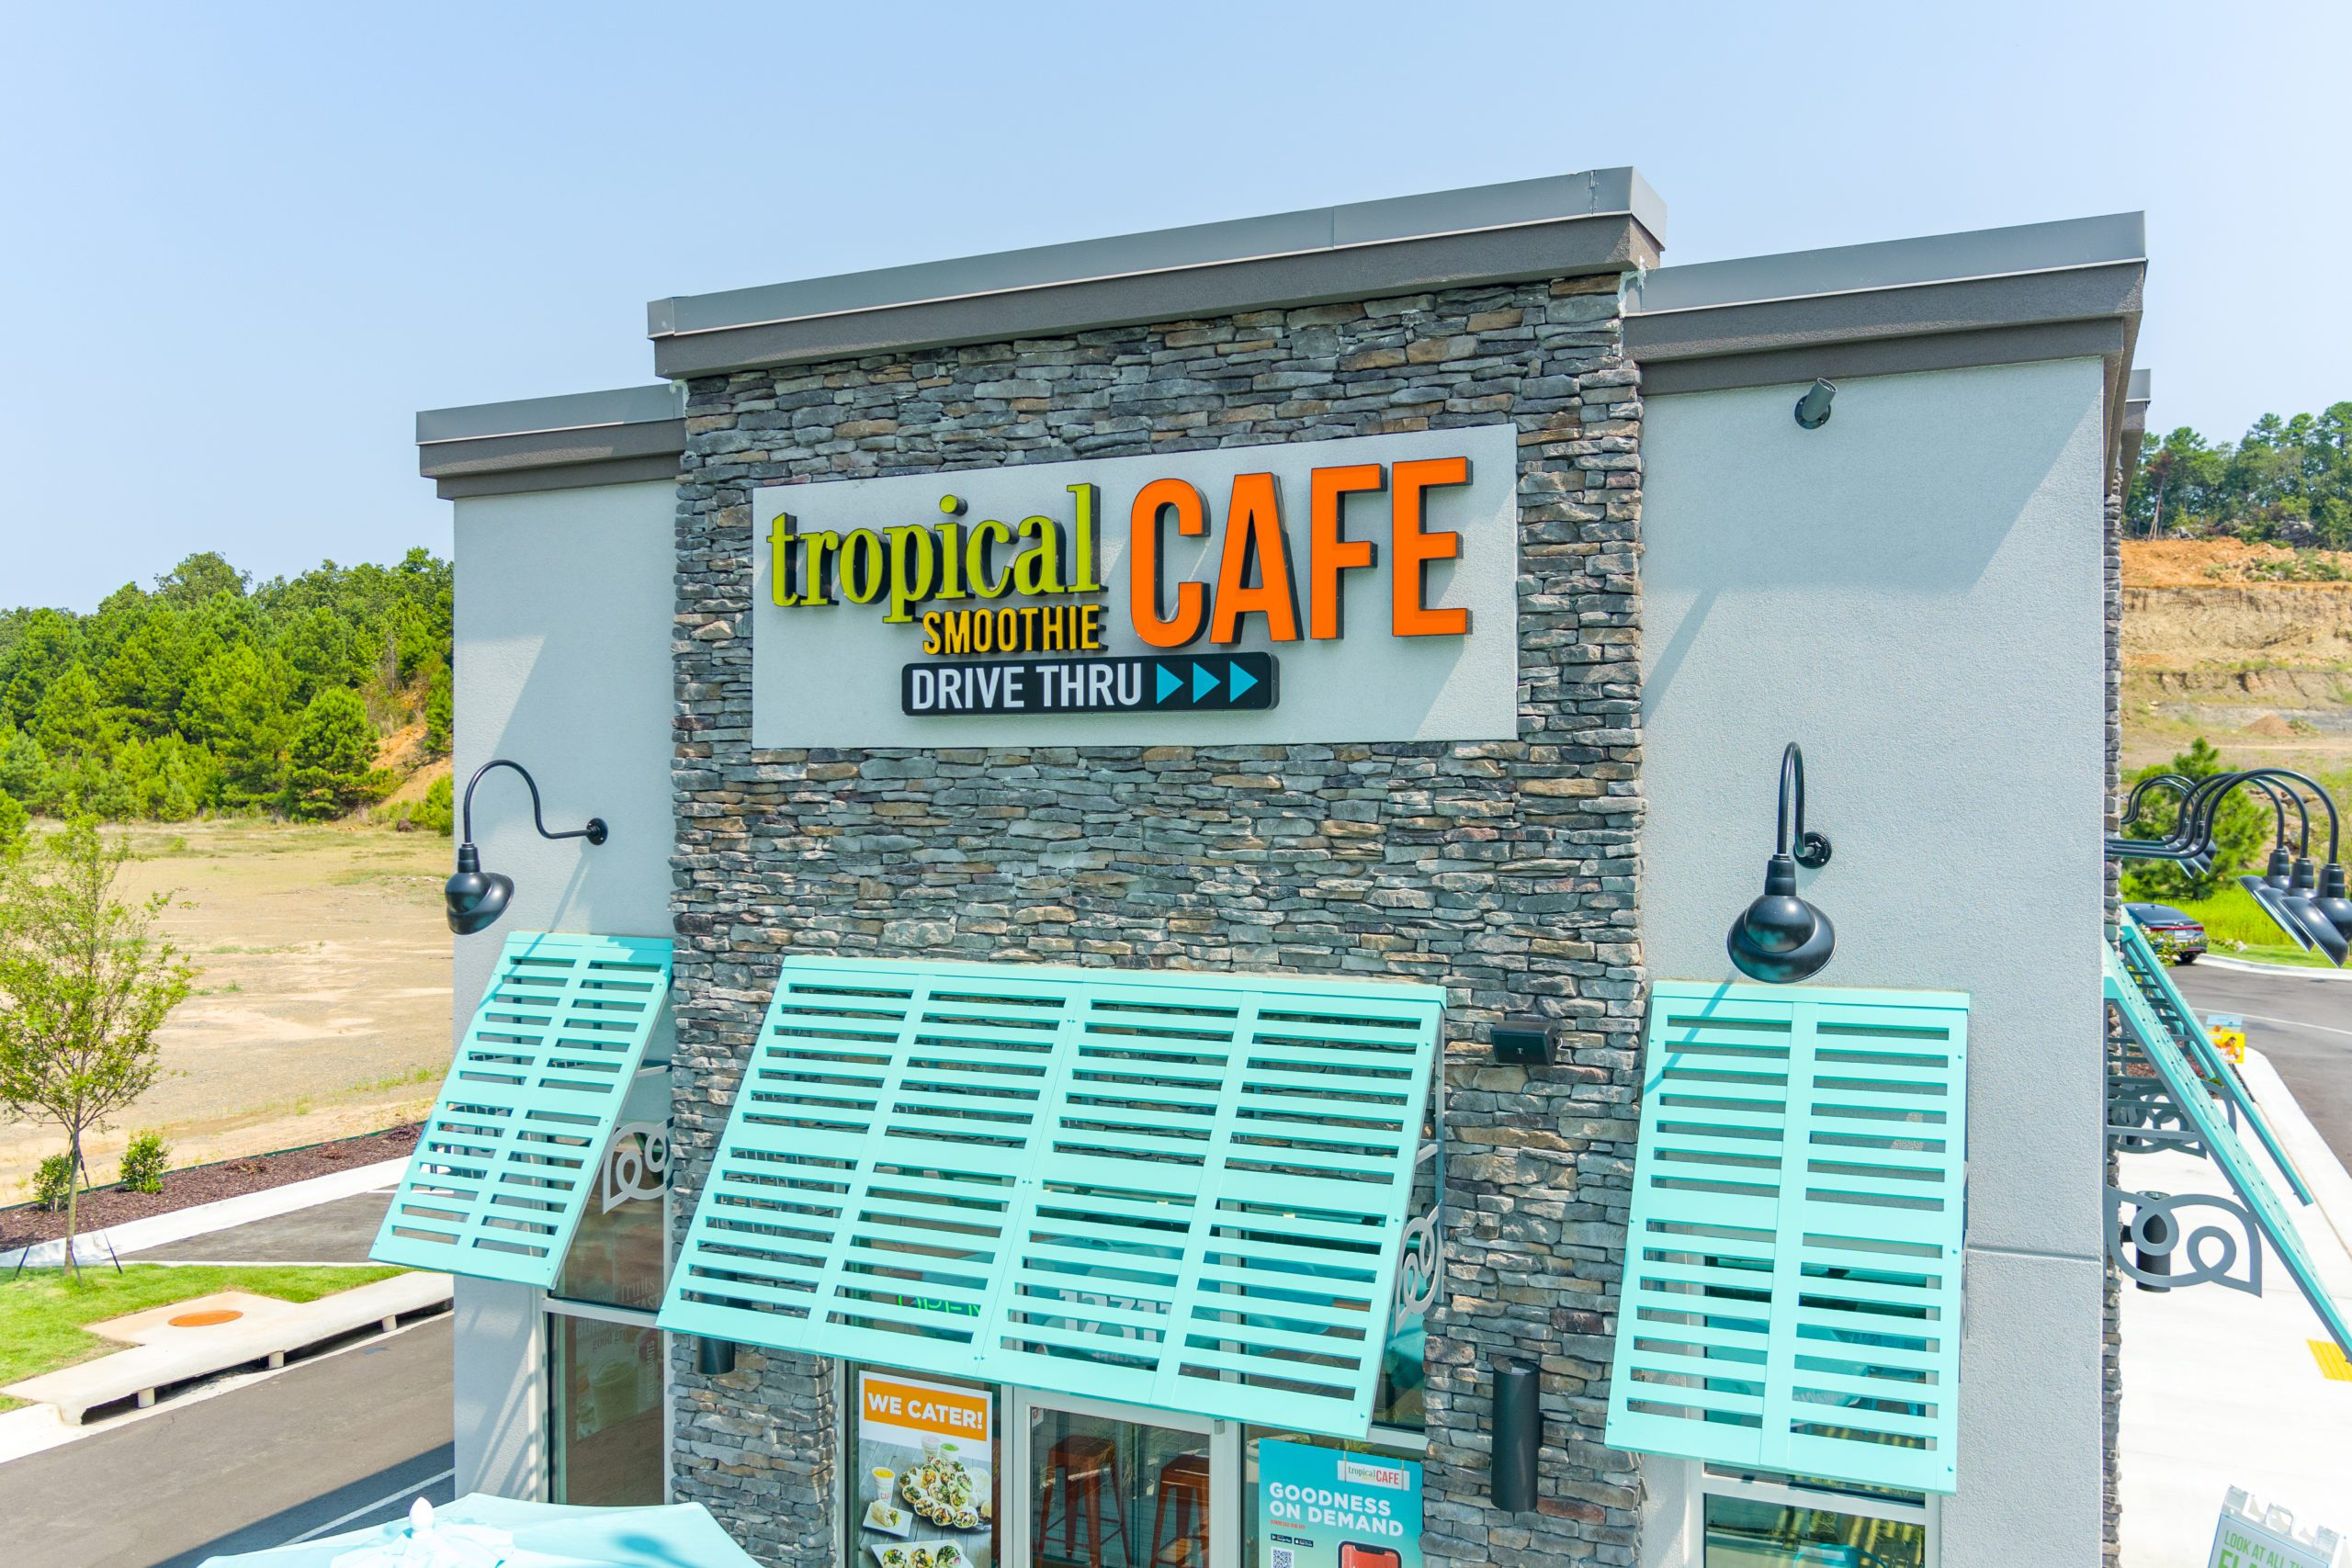 Exterior of Tropical Smoothie Cafe building with teal awnings and logo